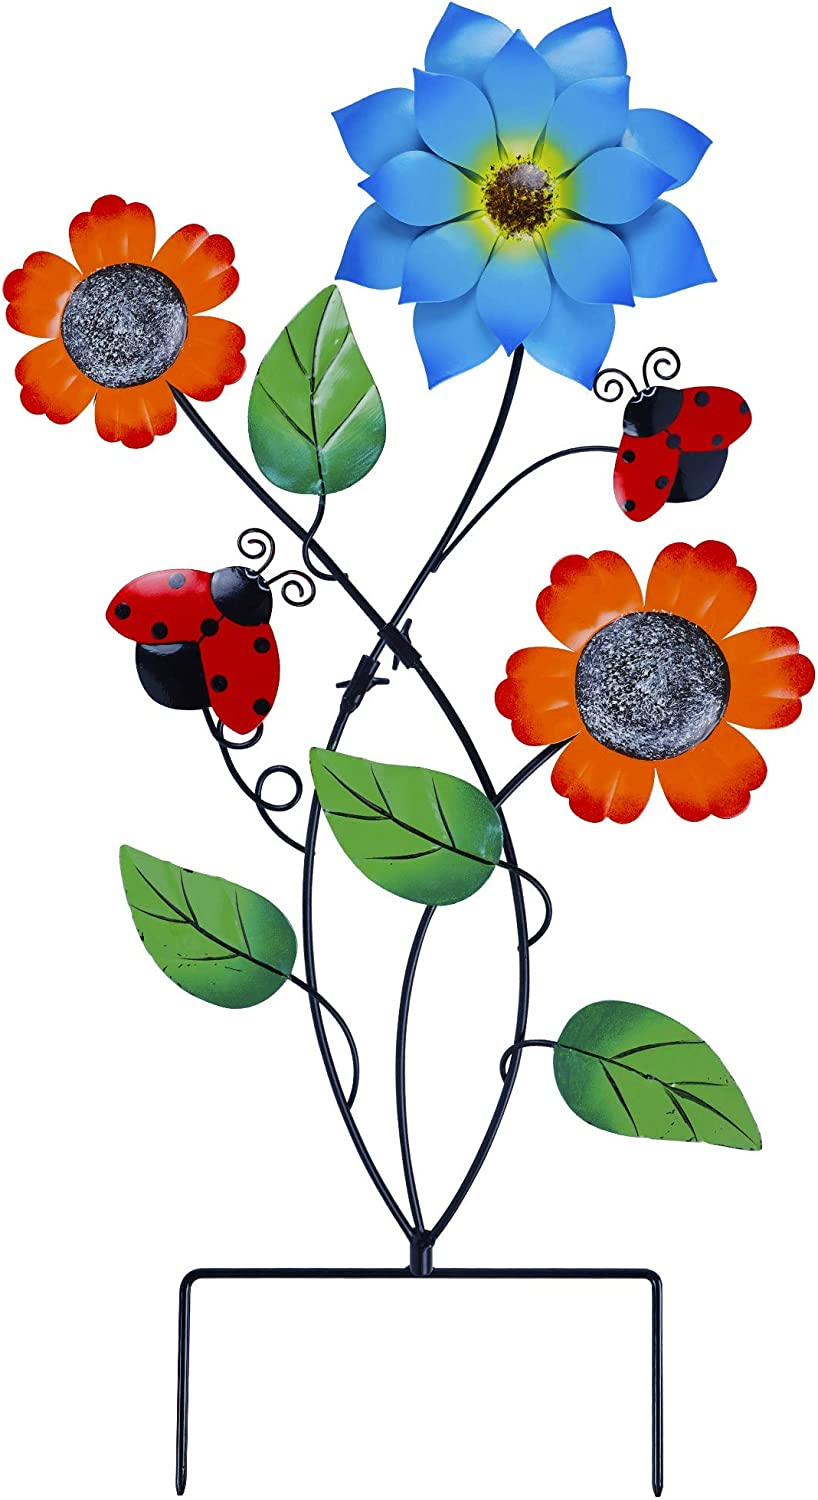 Juegoal 28 Inch Flowers Garden Stake Decor, Metal Art Colorful Look & Personalities Sunflowers and Ladybugs Decoration, Yard Outdoor Lawn Pathway Patio Ornaments